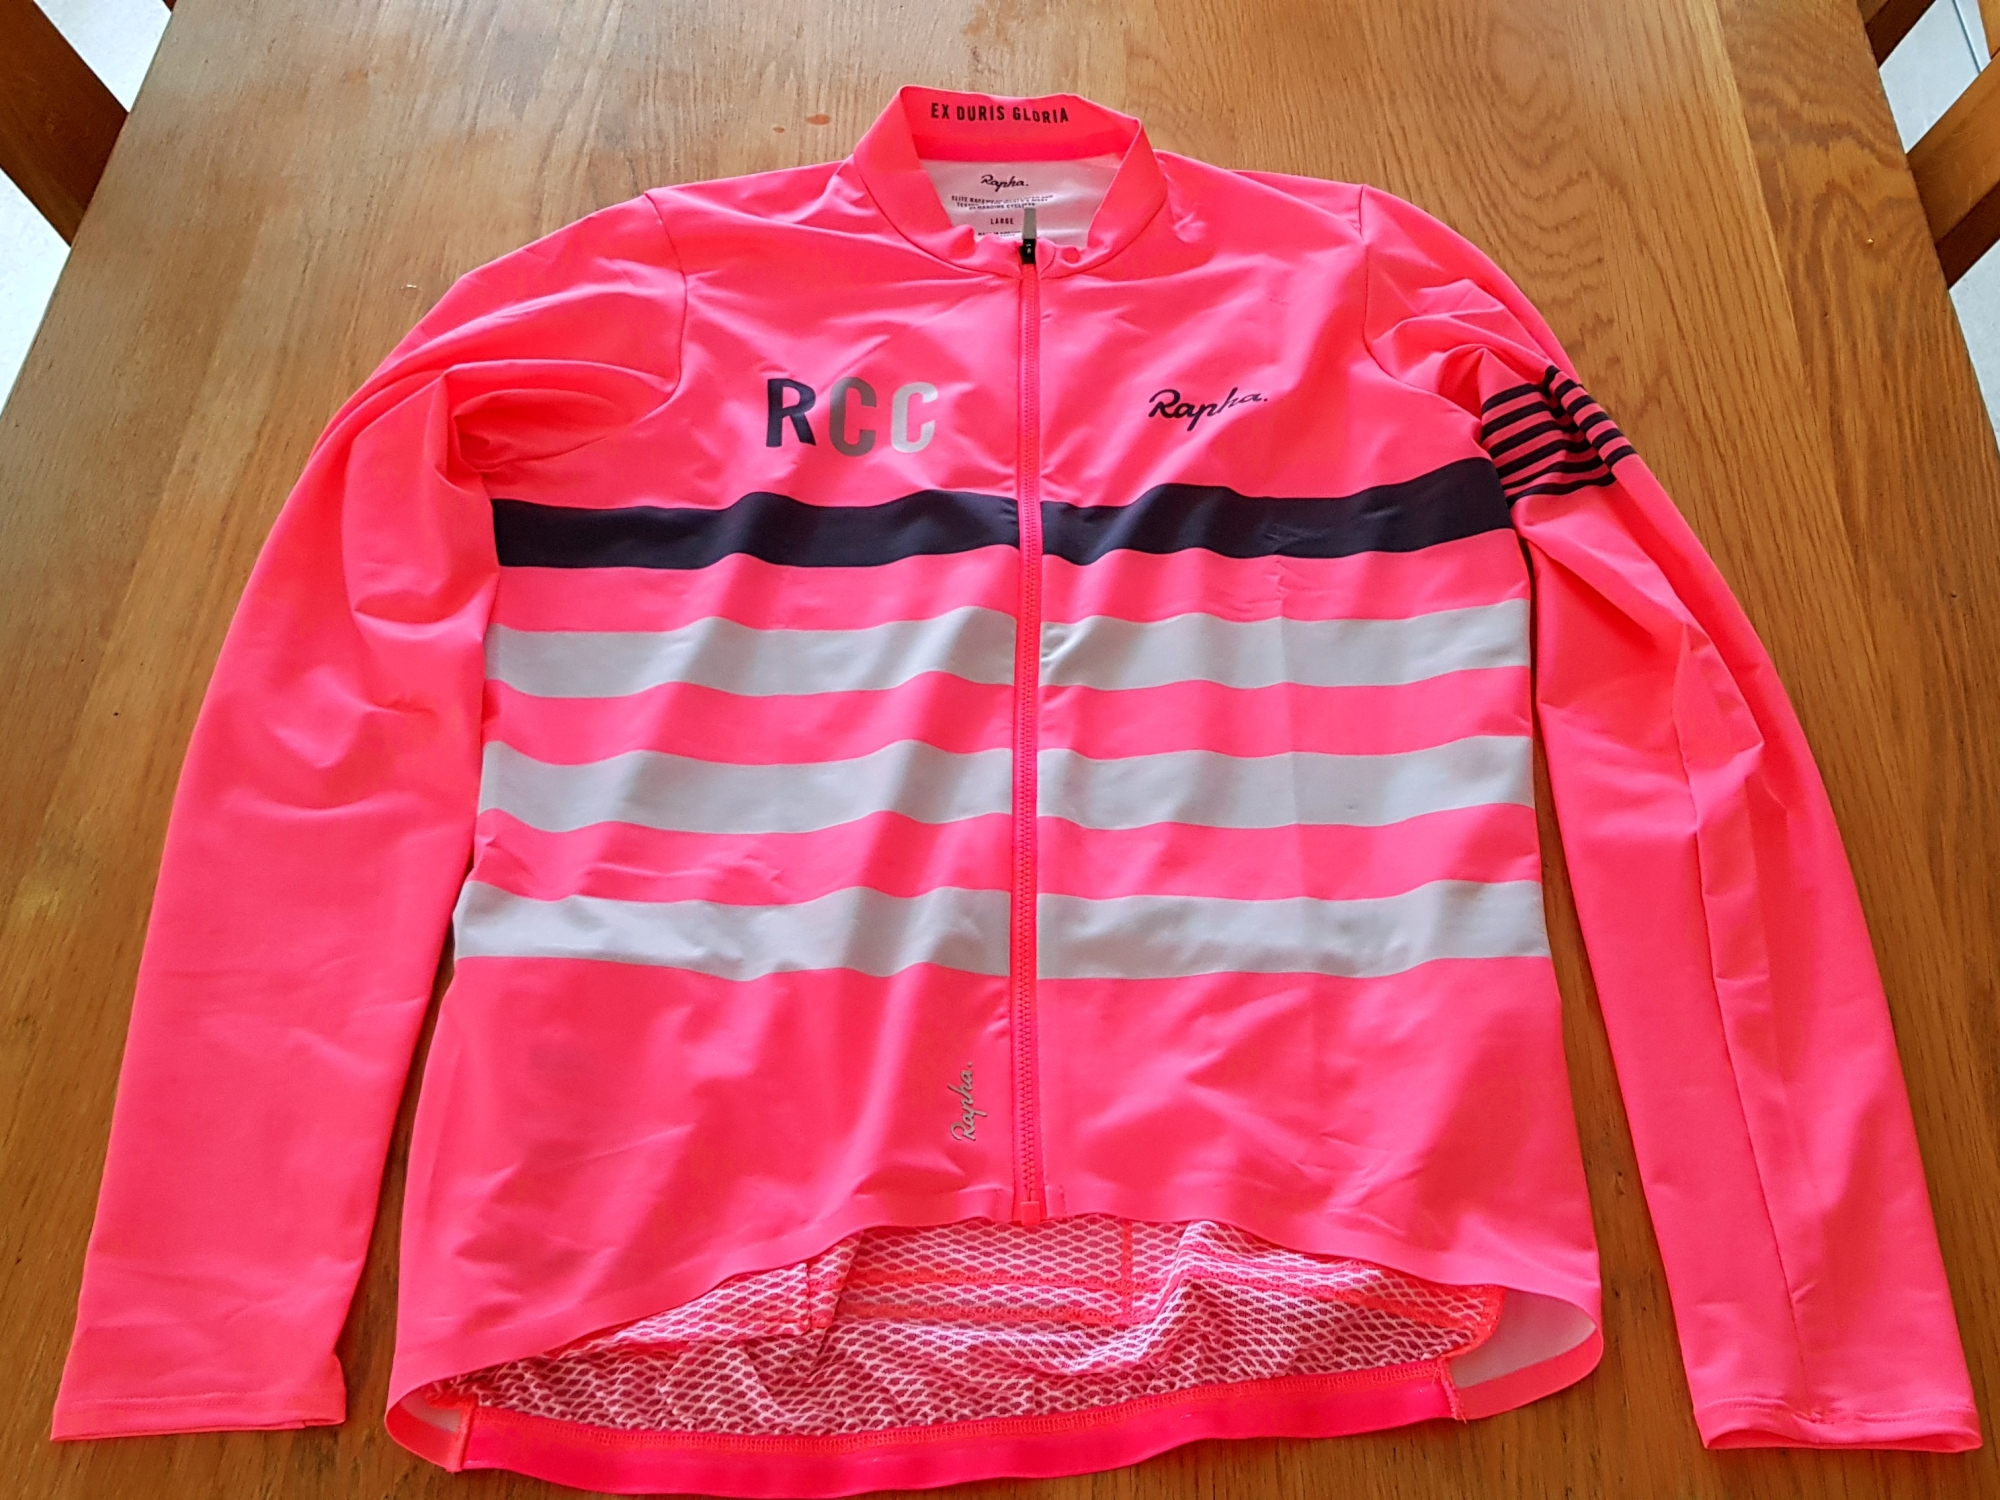 daf15effa Rapha Brevet Insulated Gilet and Midweight Pro Team Jersey ...